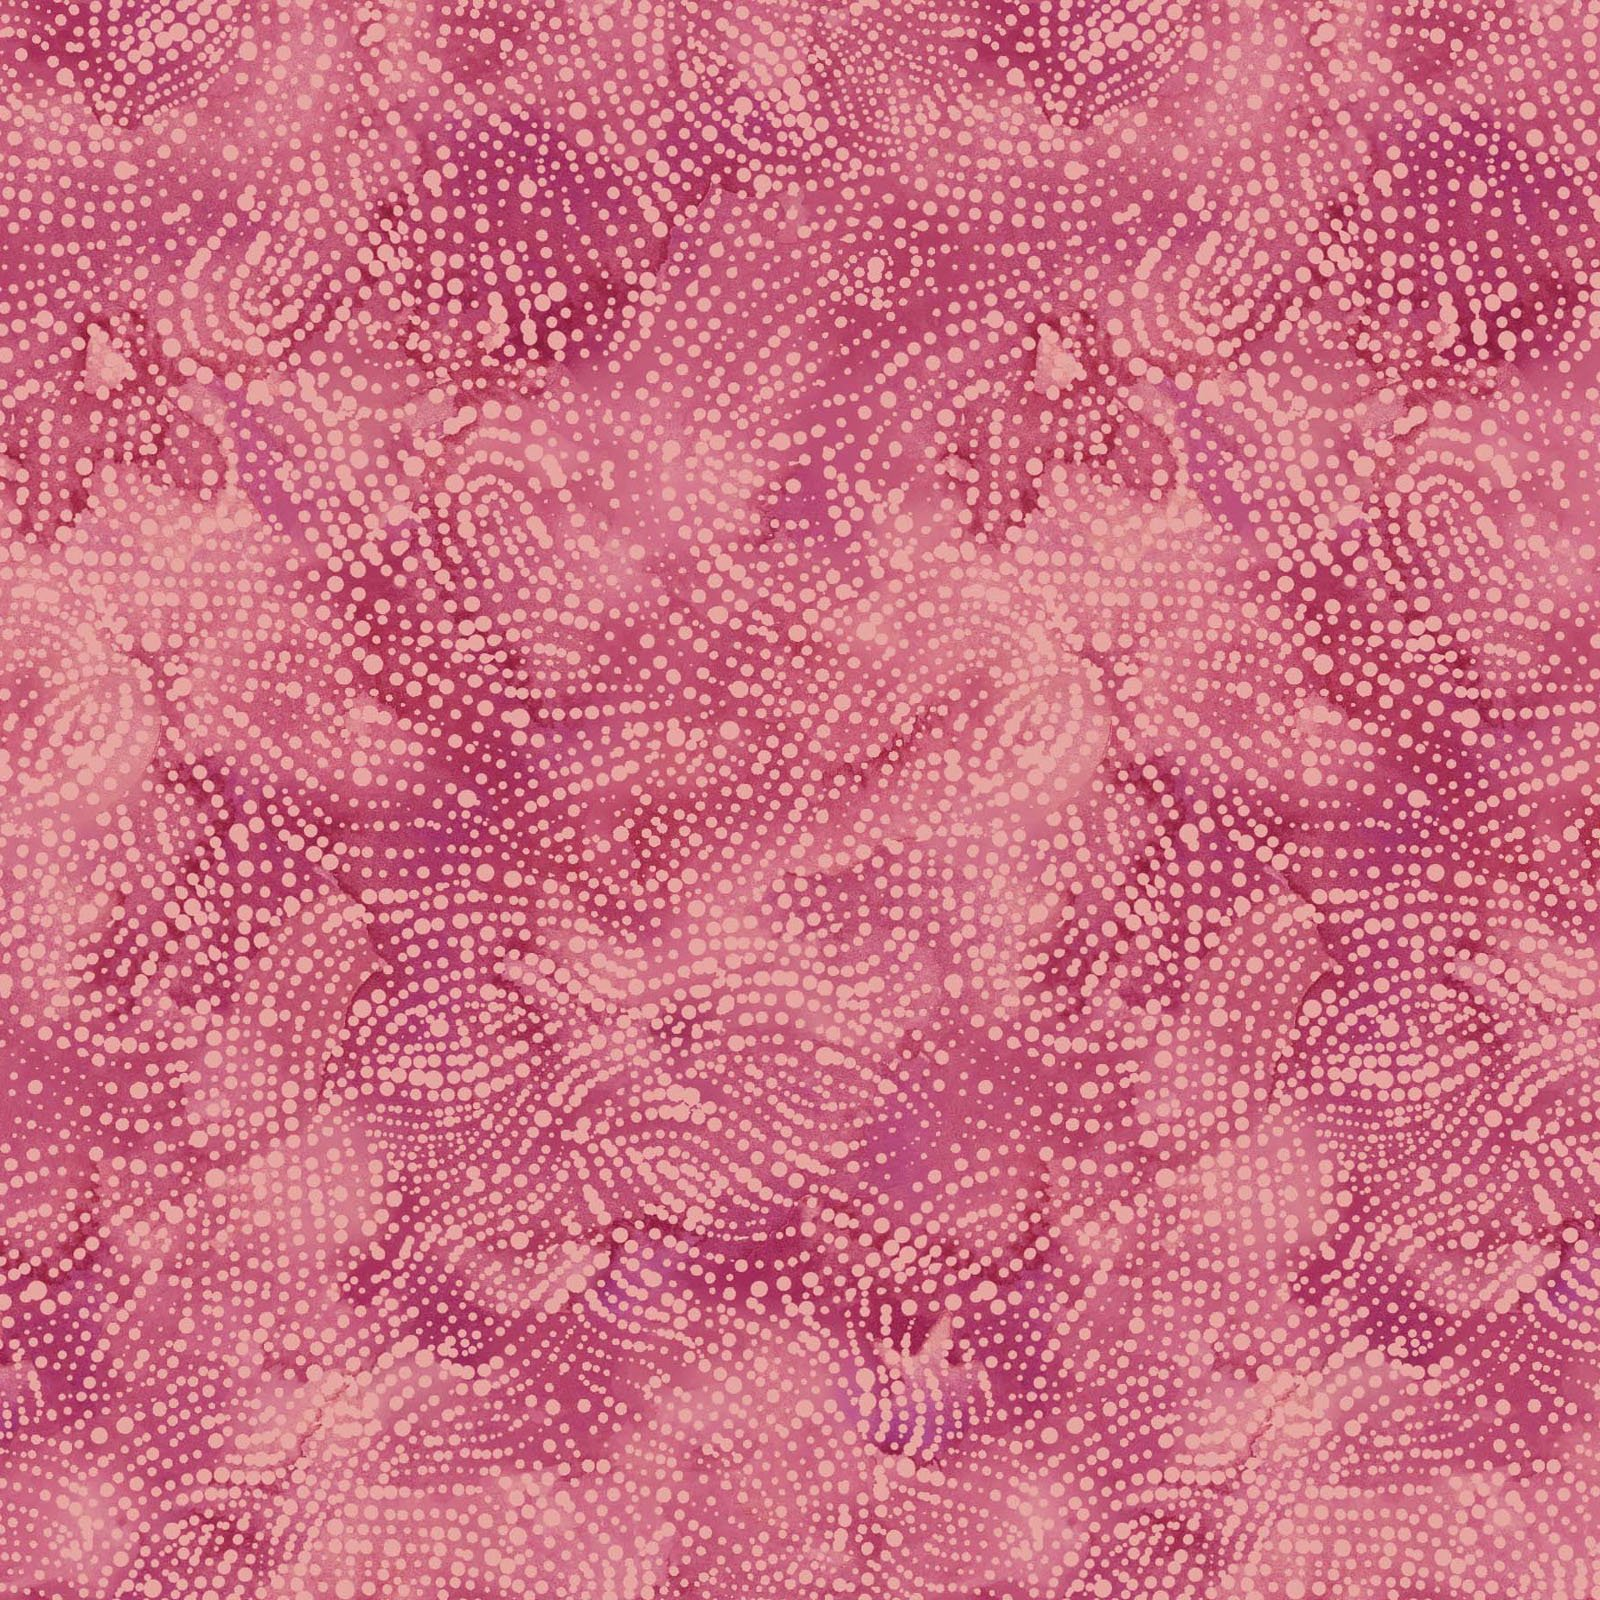 SERE-4492 DP - SERENITY BY JETTI HOME DK PINK - ARRIVING IN JULY 2021